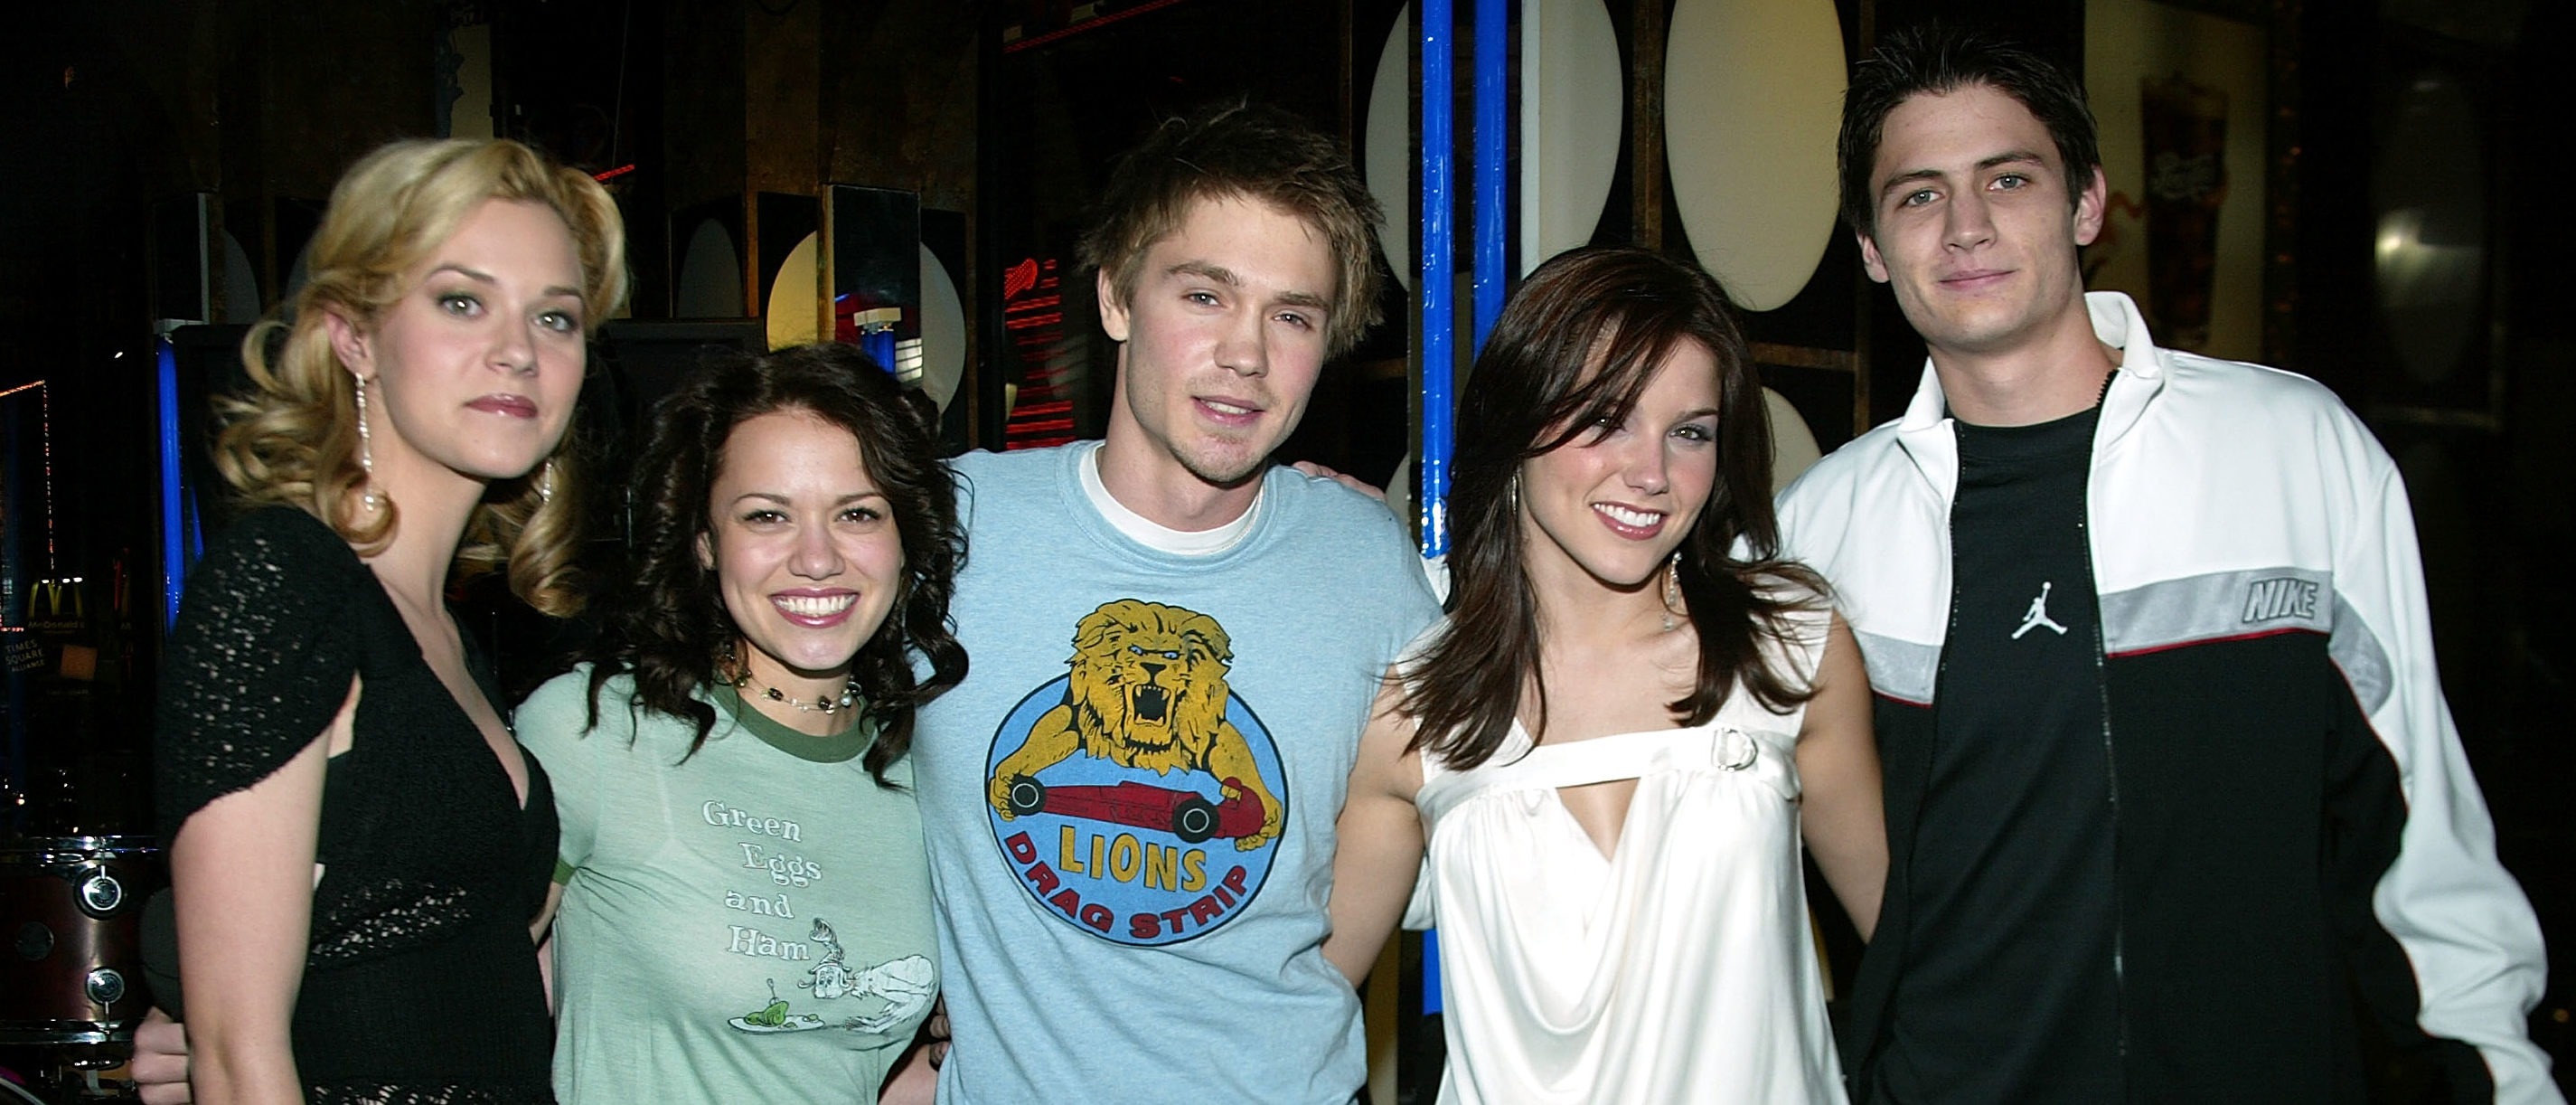 """(Left to right) The cast of """"One Tree Hill,"""" Hilarie Burton, Chad Michael Murray, Sophia Bush, Bethany Joy Lenz, and James Lafferty  on stage during """"TRL BreakOut Stars Week"""" on MTV's Total Request Live held on January 16, 2004 at the MTV Times Square Studios, in New York City. (Photo by Frank Micelotta/Getty Images)"""